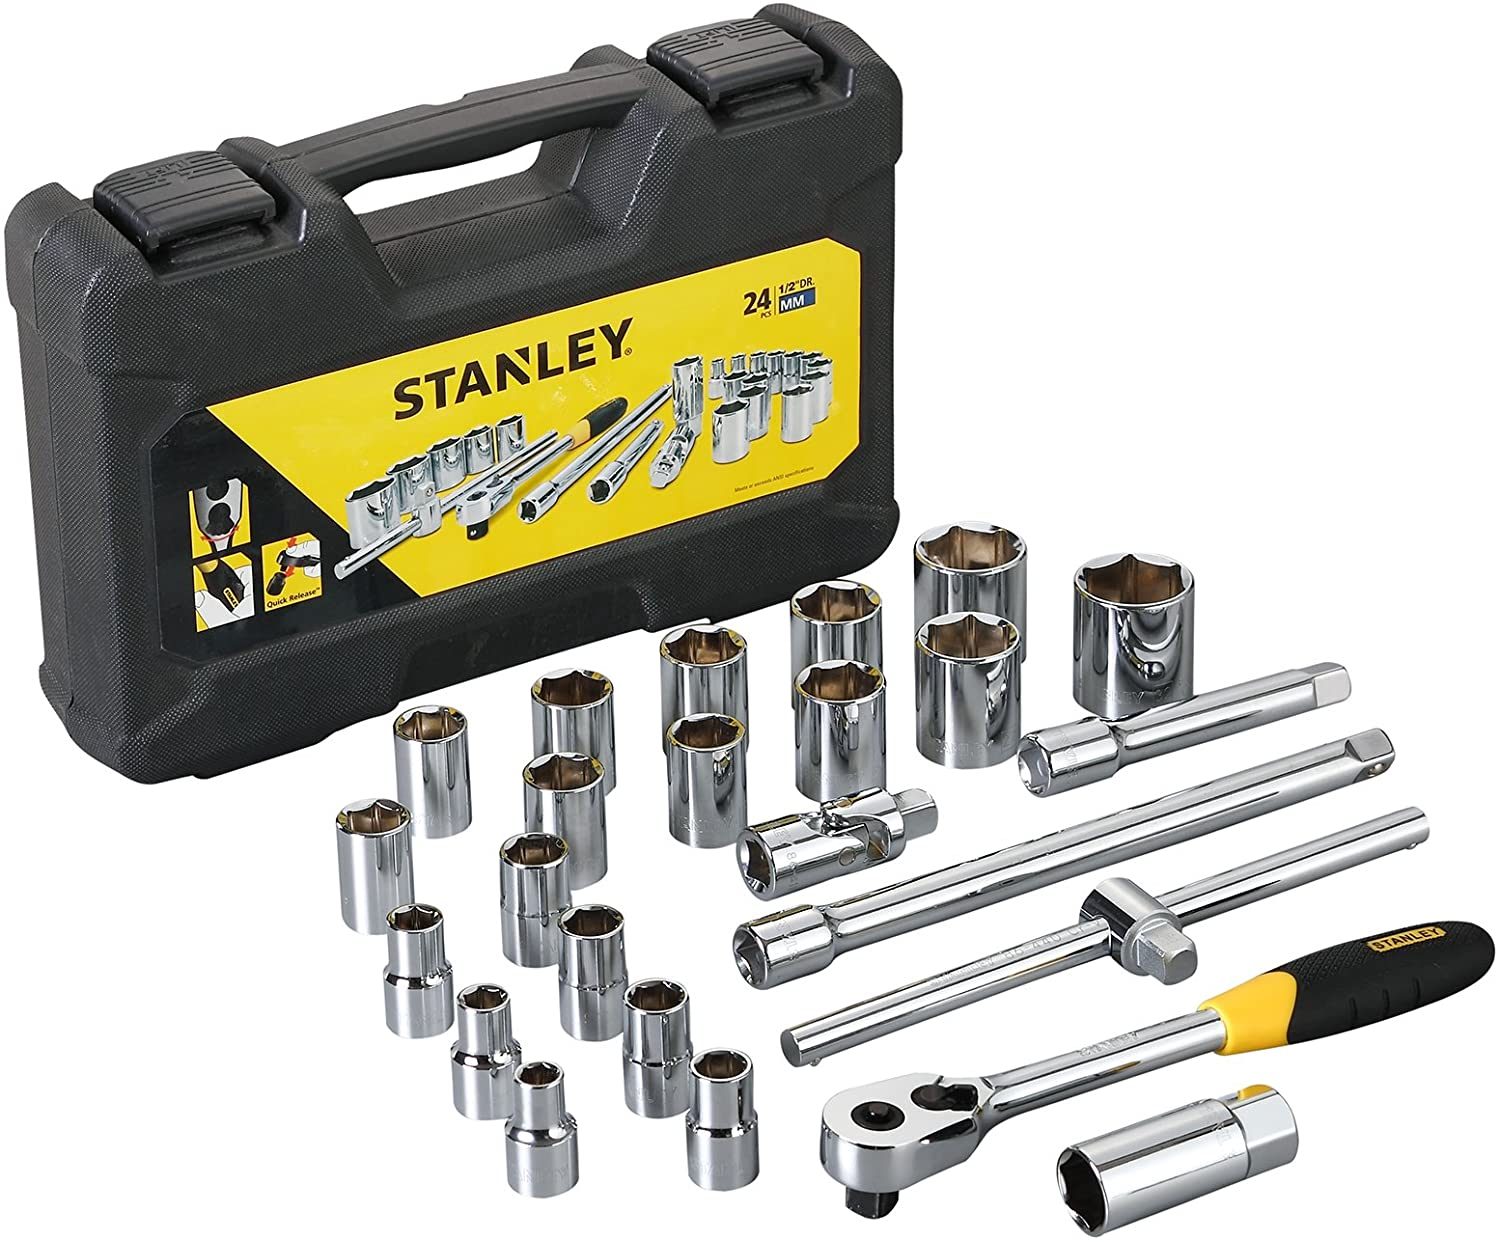 Sockets and Accessories-STMT72795-8-Stanley Distributors in UAE